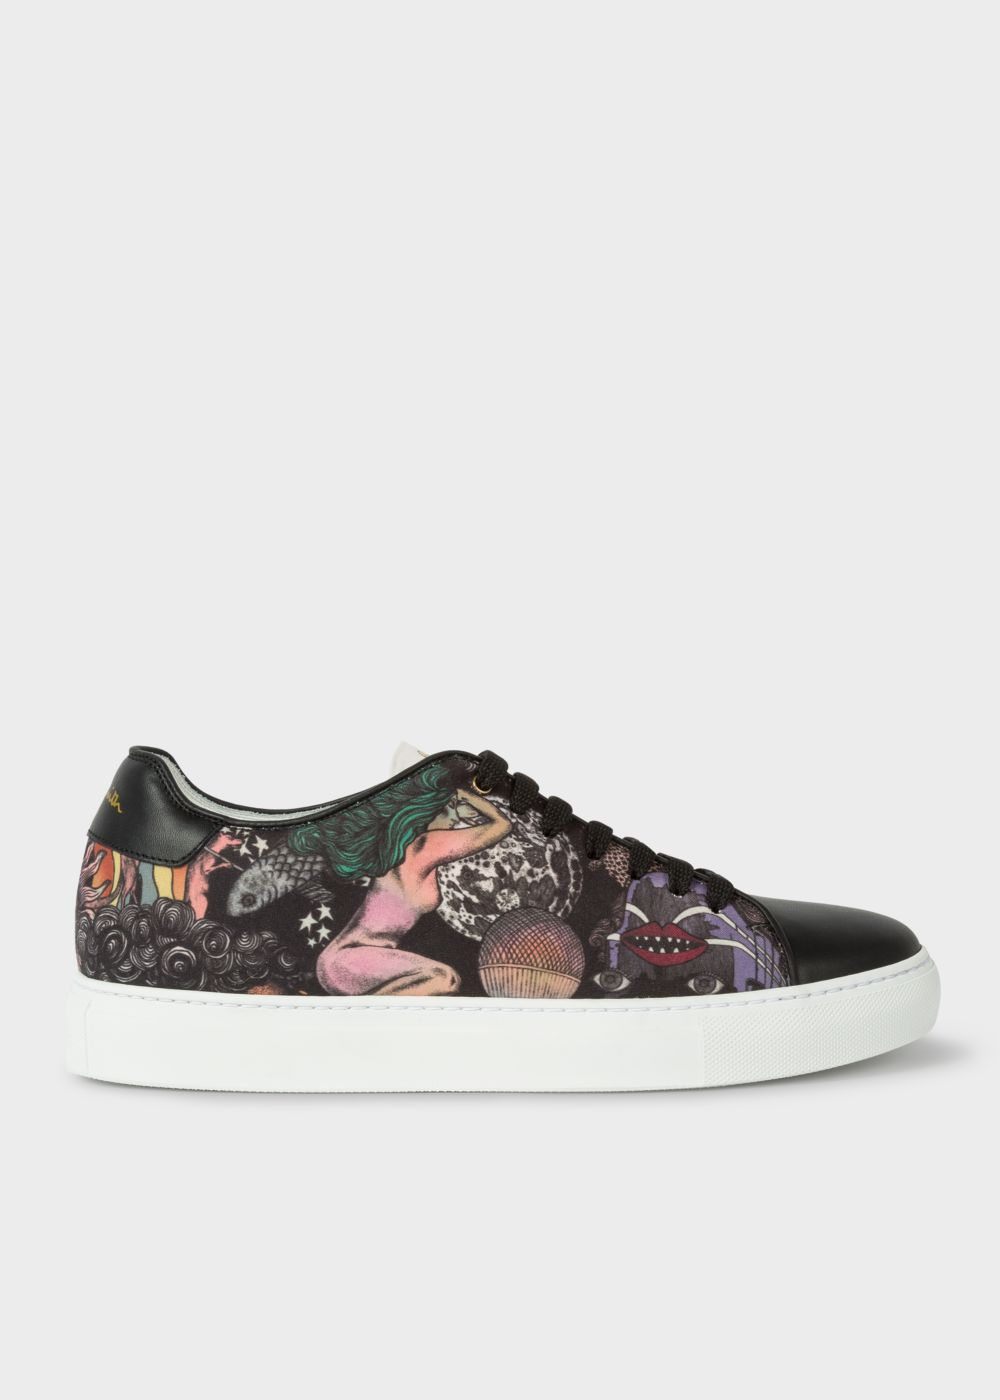 Paul Smith Men's 'Psychedelic Sun' Black 'Basso' Trainers